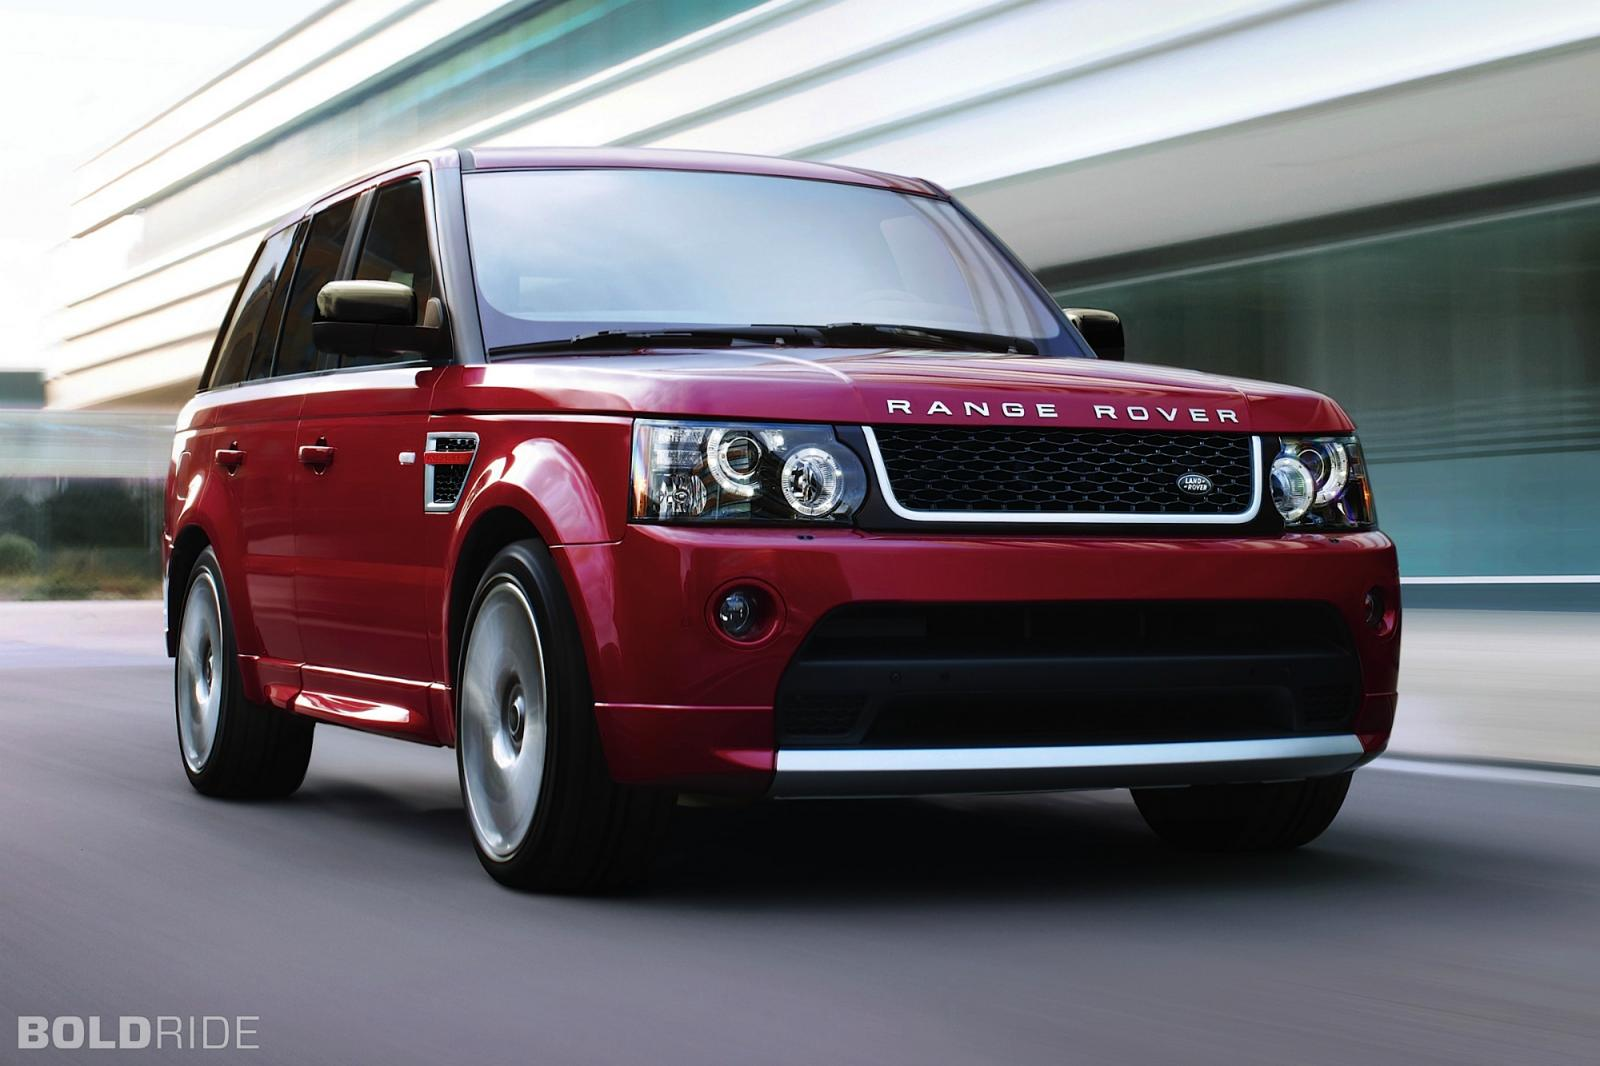 2012 land rover range rover sport information and photos. Black Bedroom Furniture Sets. Home Design Ideas